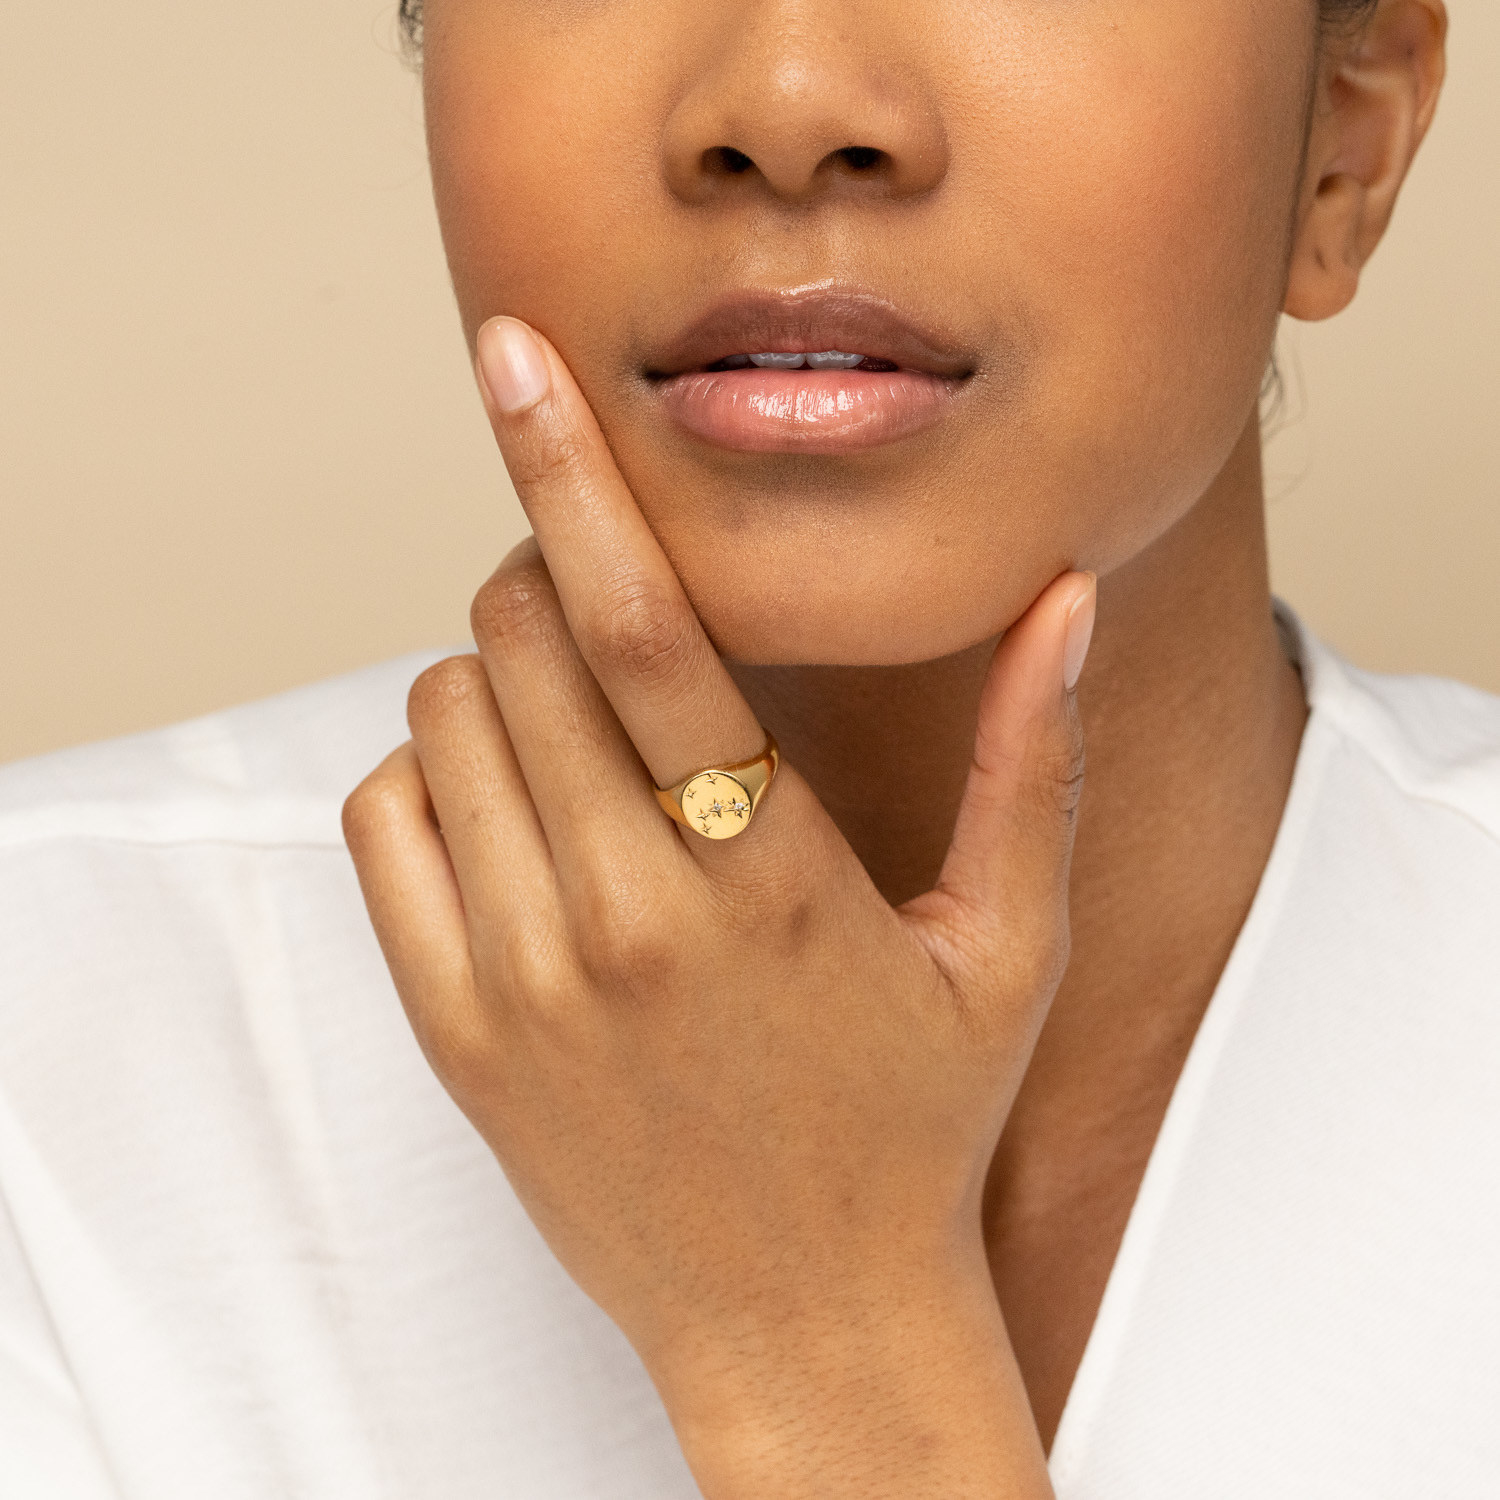 A model with the signet ring on their index finger